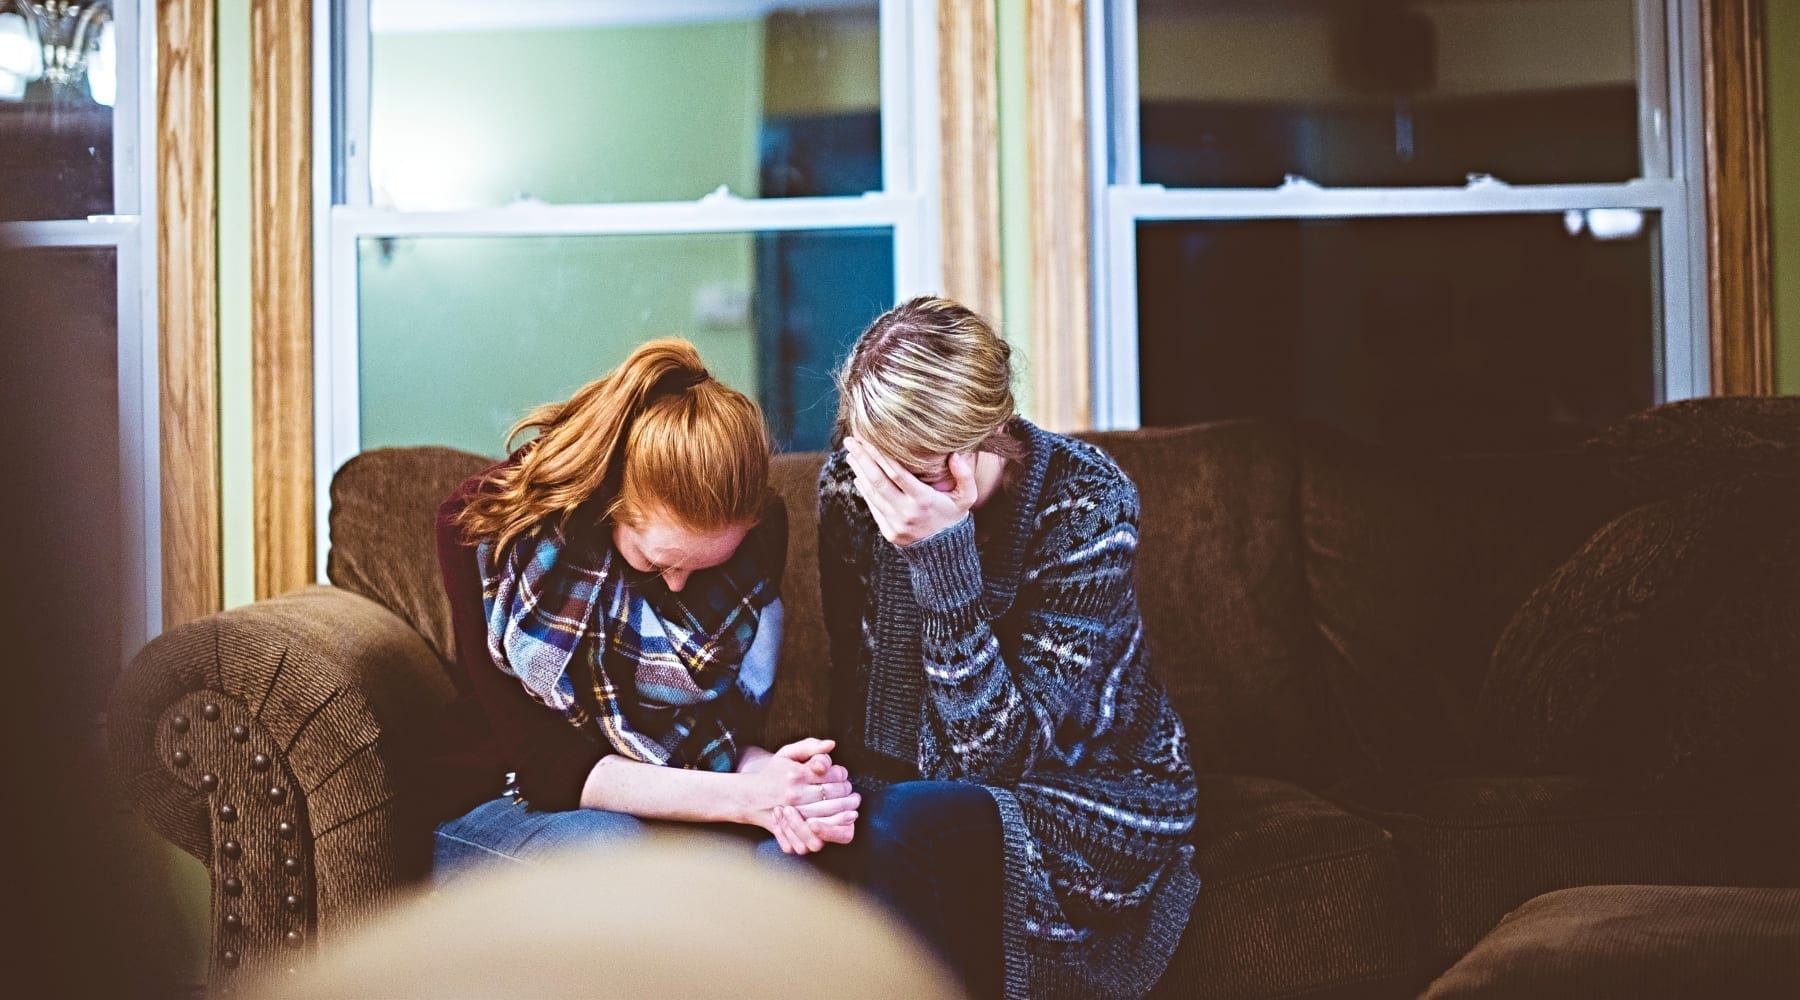 Two women sitting on a couch crying with their heads down